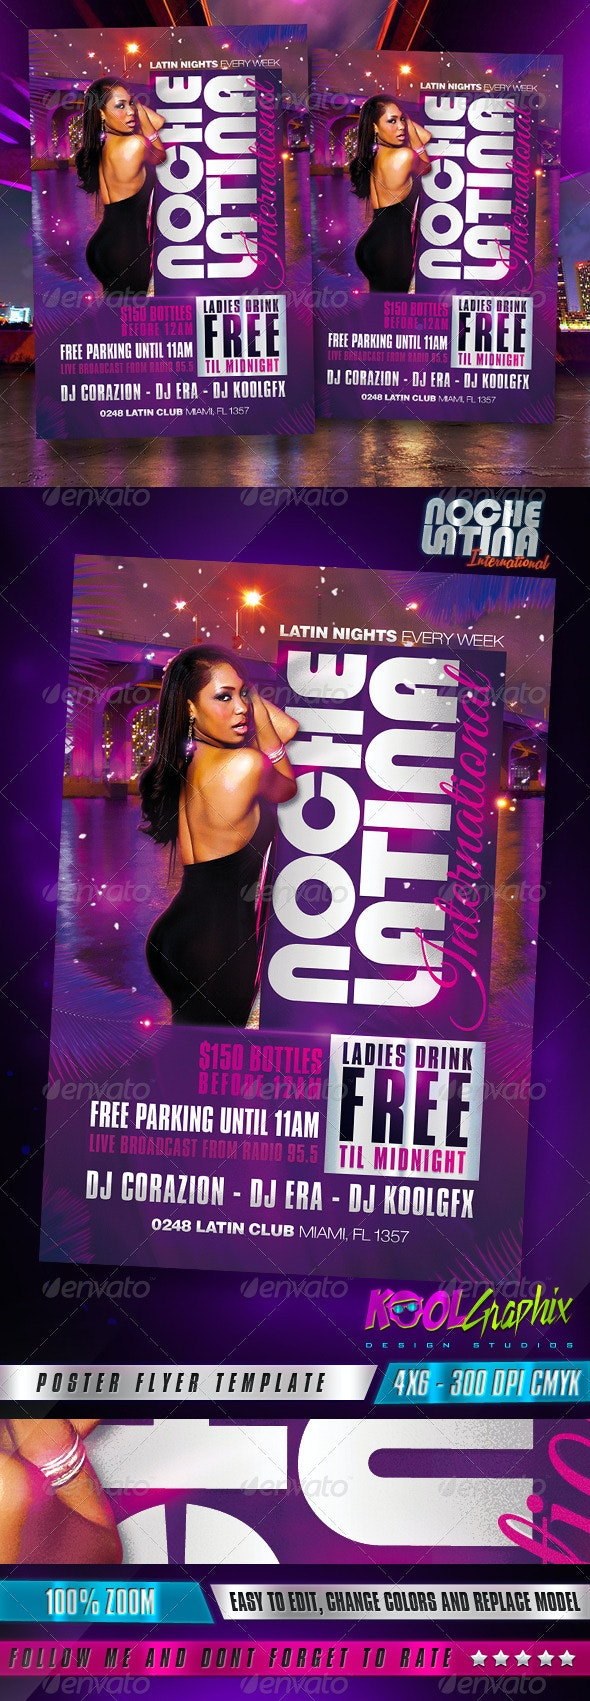 Latin Night - Noche Latina Club Party Flyer - Clubs & Parties Events